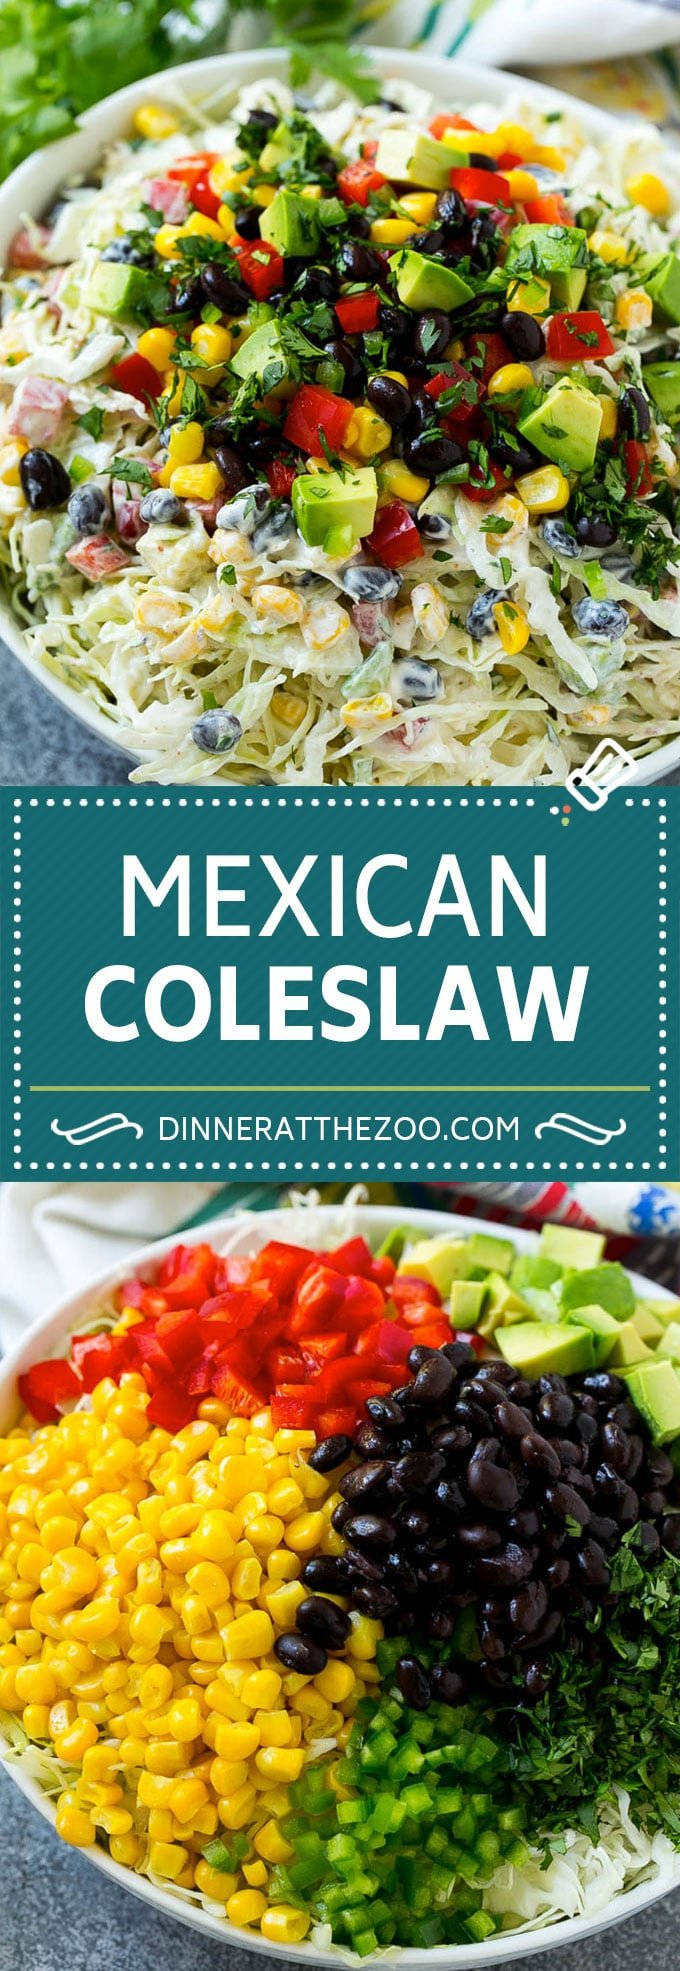 Mexican Coleslaw Recipe | Southwestern Coleslaw | Easy Coleslaw #coleslaw #mexicanfood #salad #dinneratthezoo